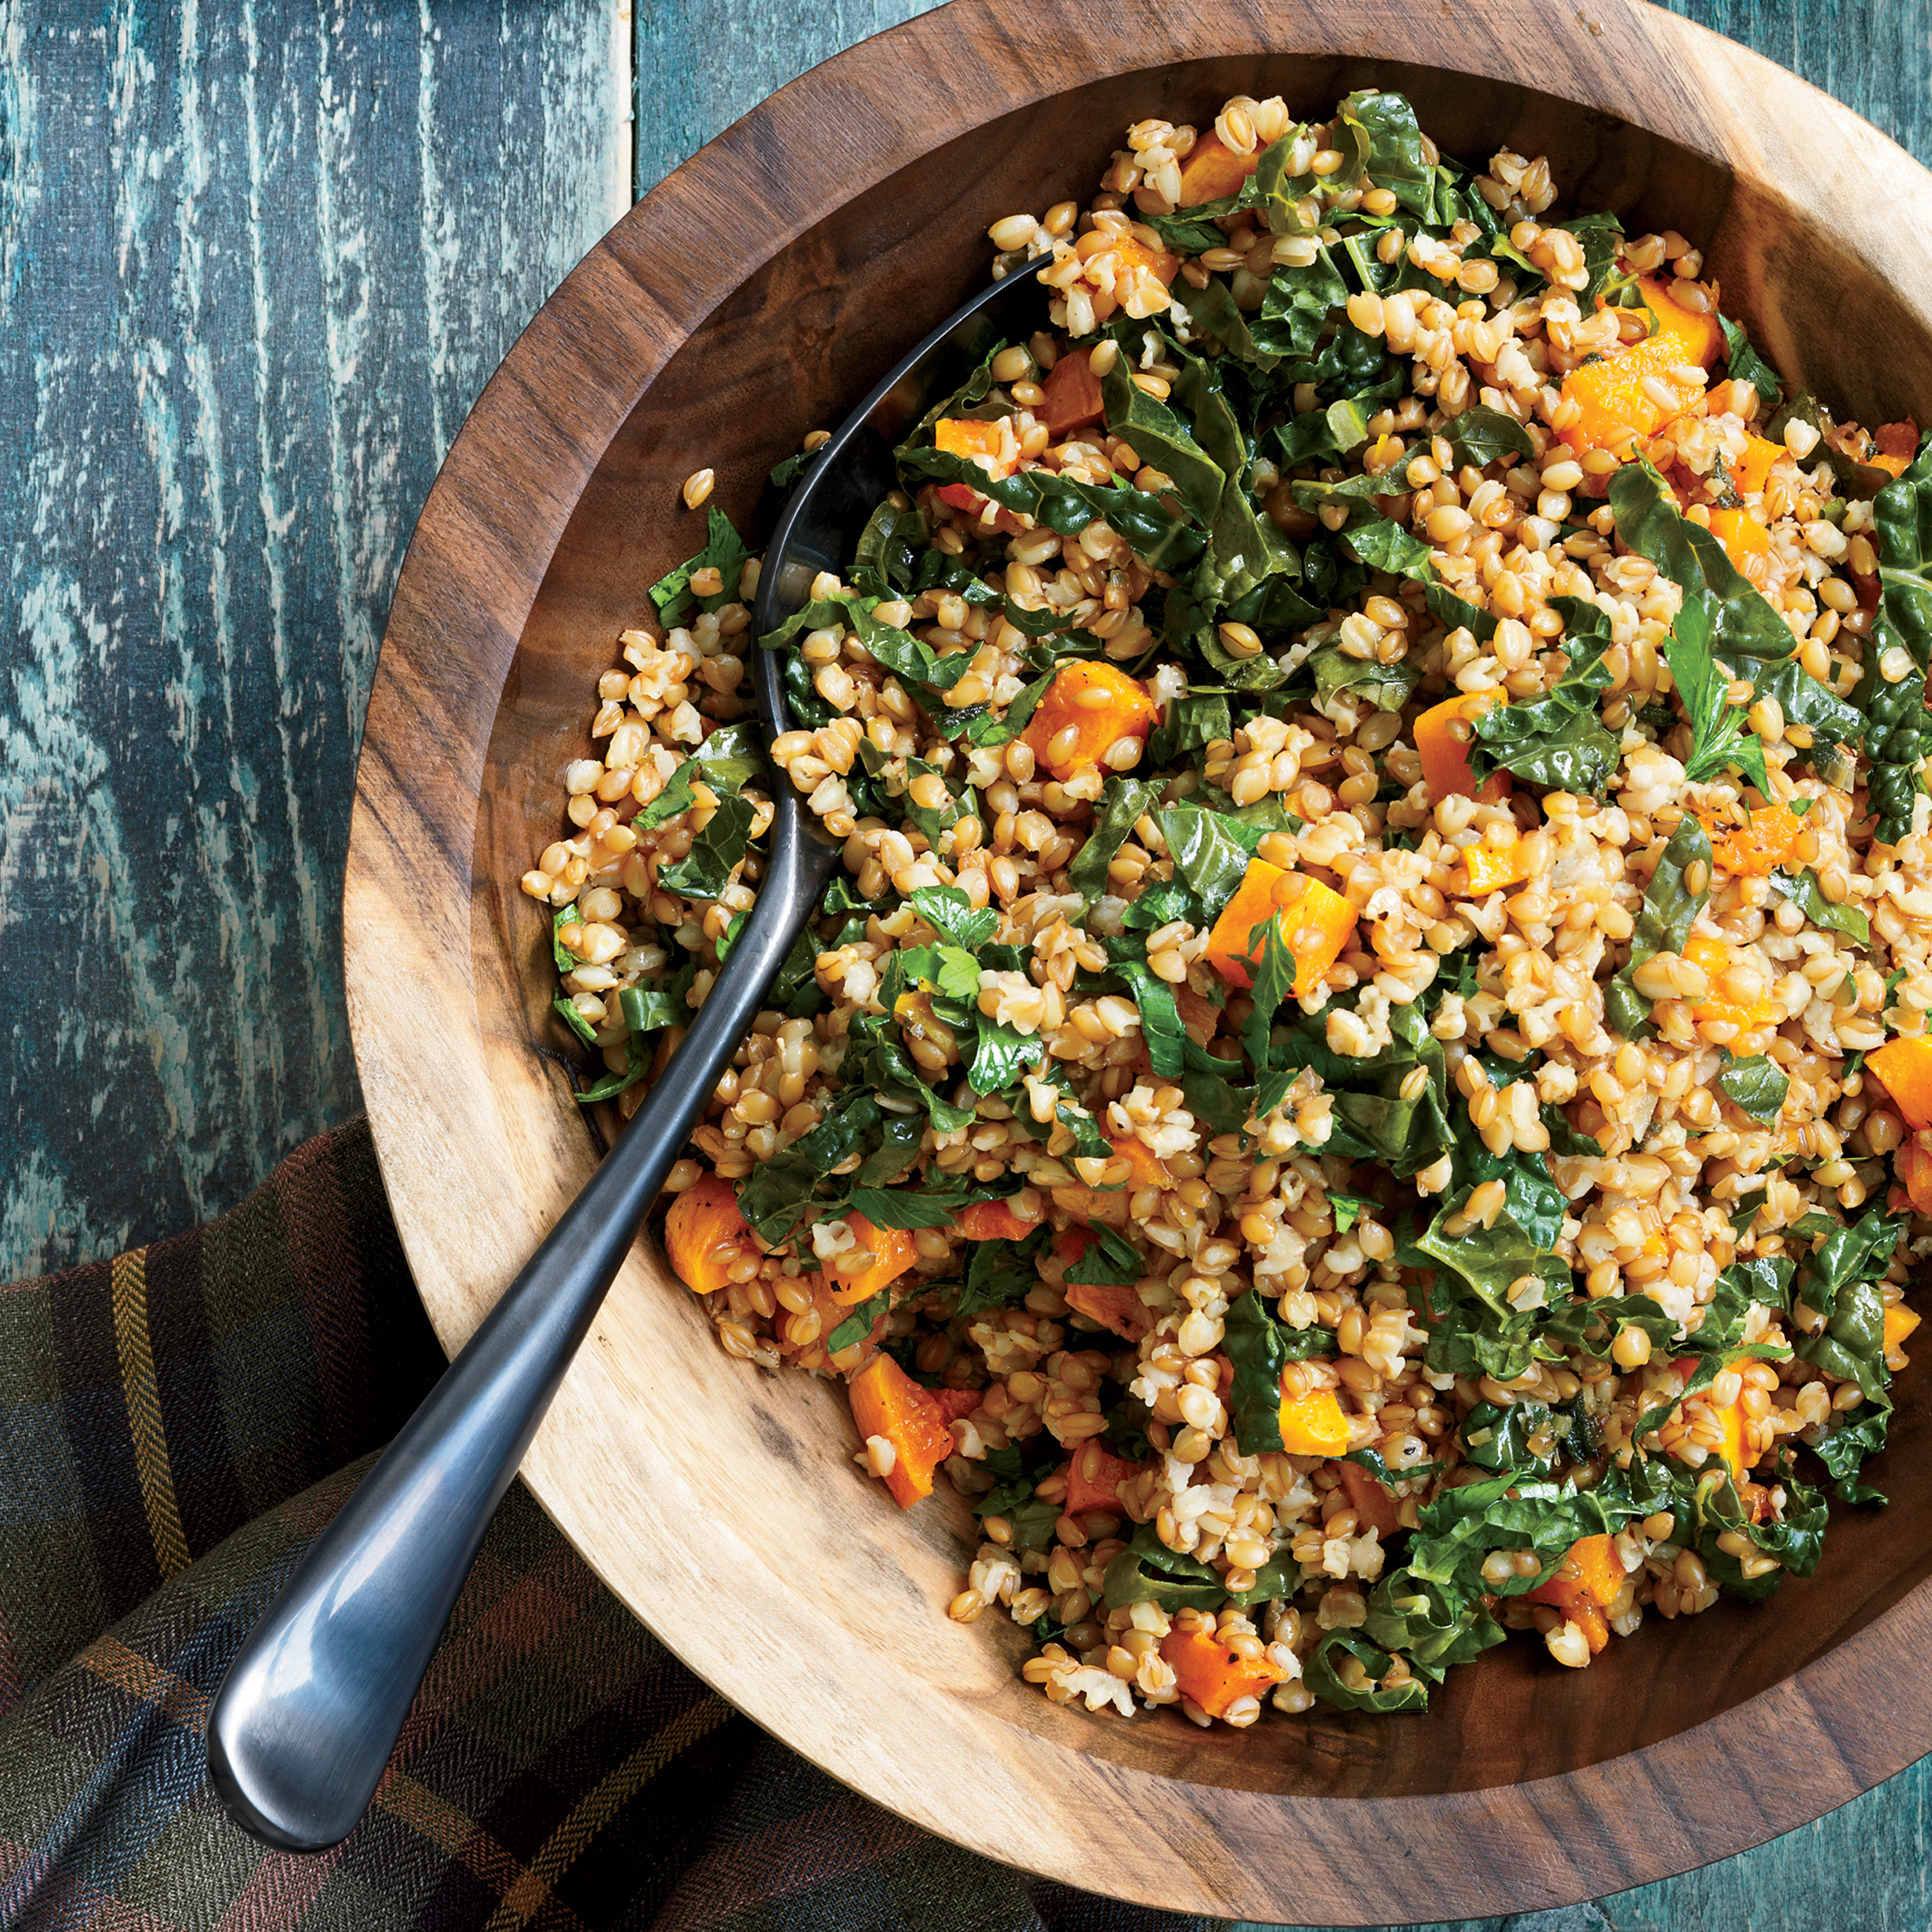 Wheat Berry Salad with Tuscan Kale and Butternut Squash Reci..